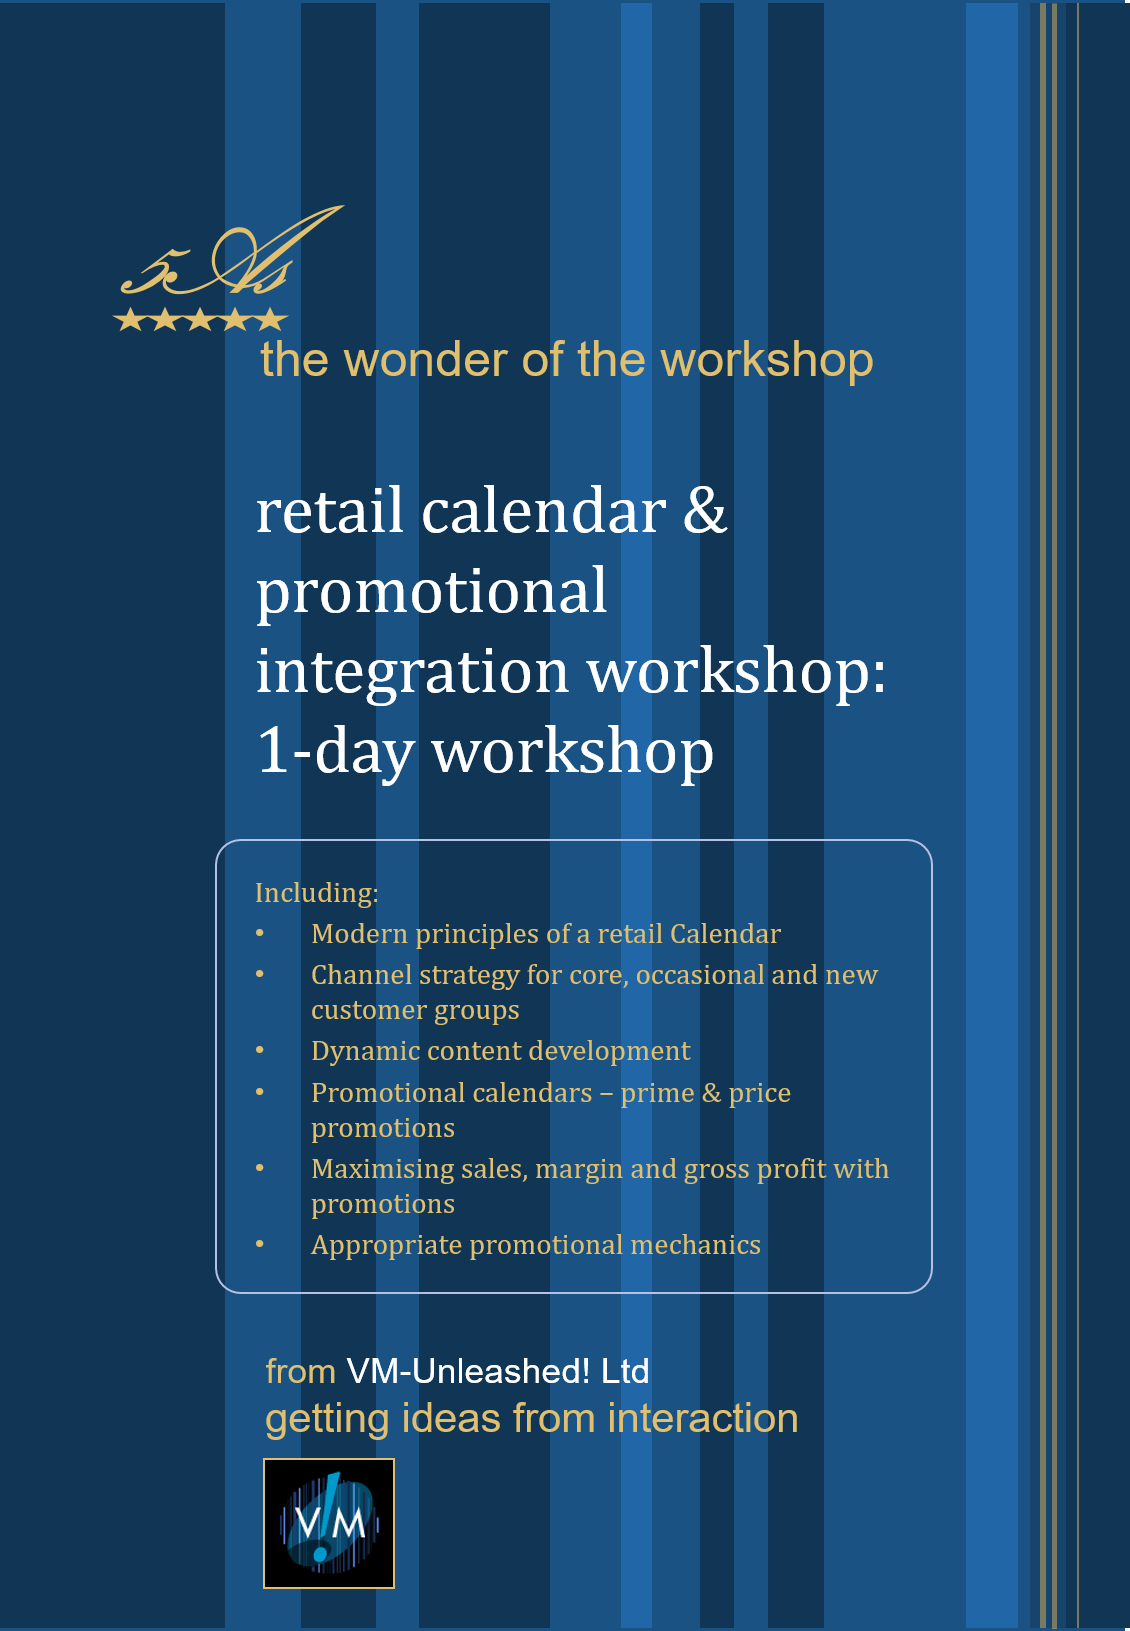 vm-unleashed-workshop-retail-calendar-sales-promotions